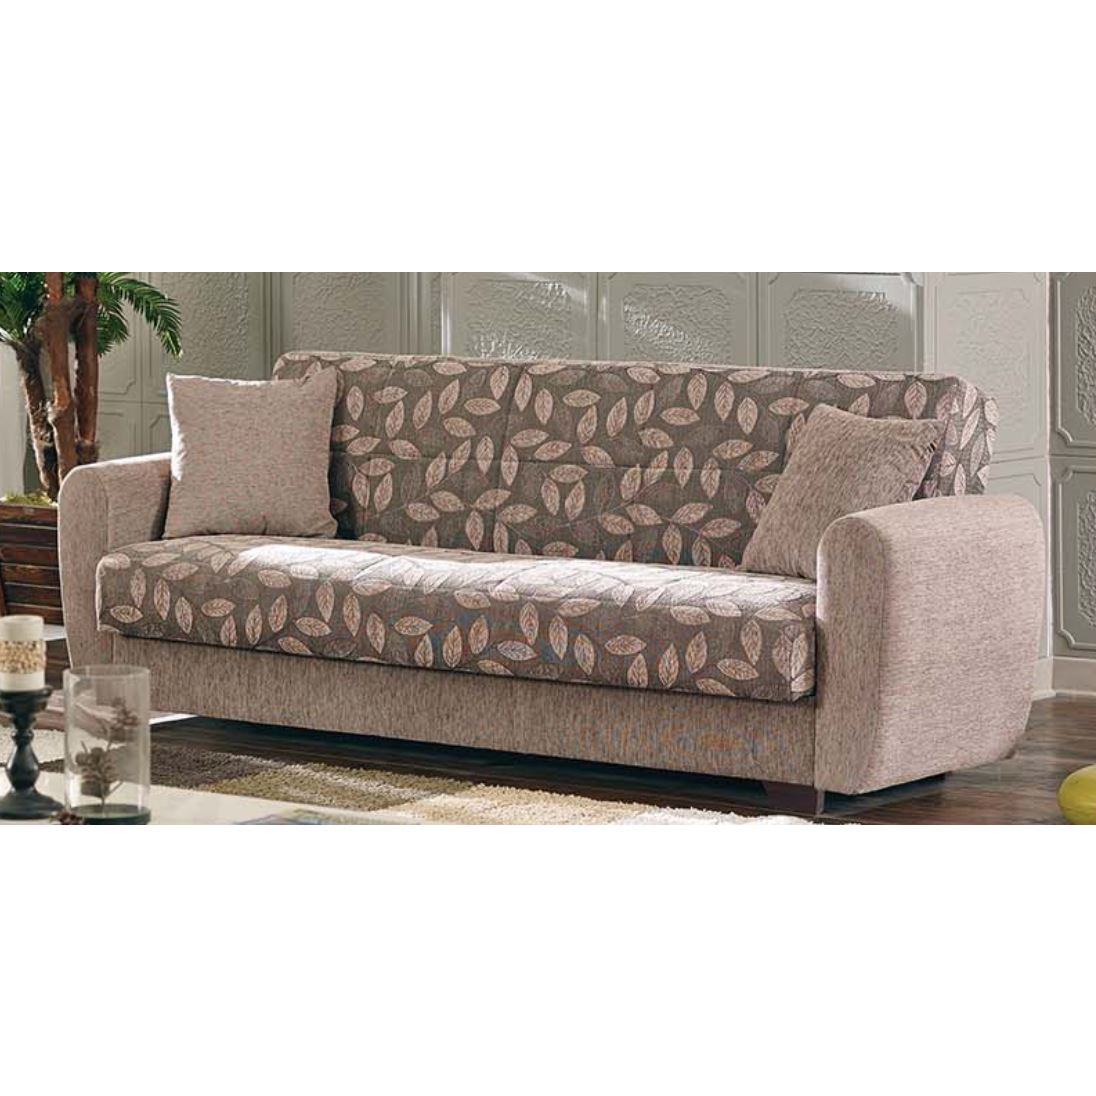 Chestnut Convertible Sofa Bed, Brown